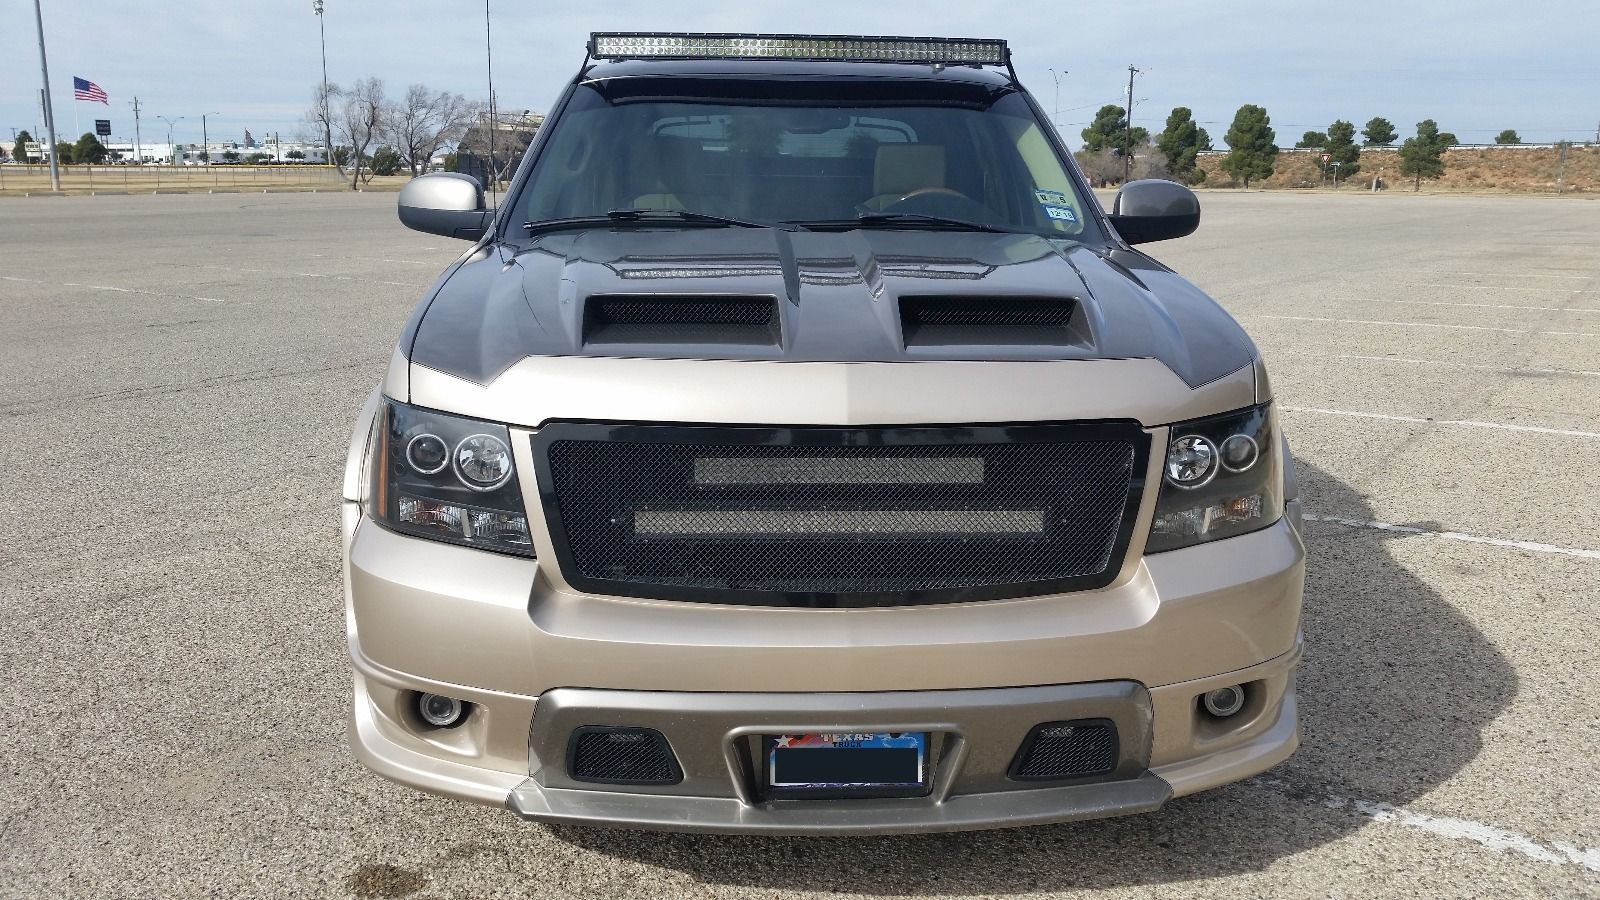 2008 Chevrolet Avalanche Lt Custom Conversion For Sale